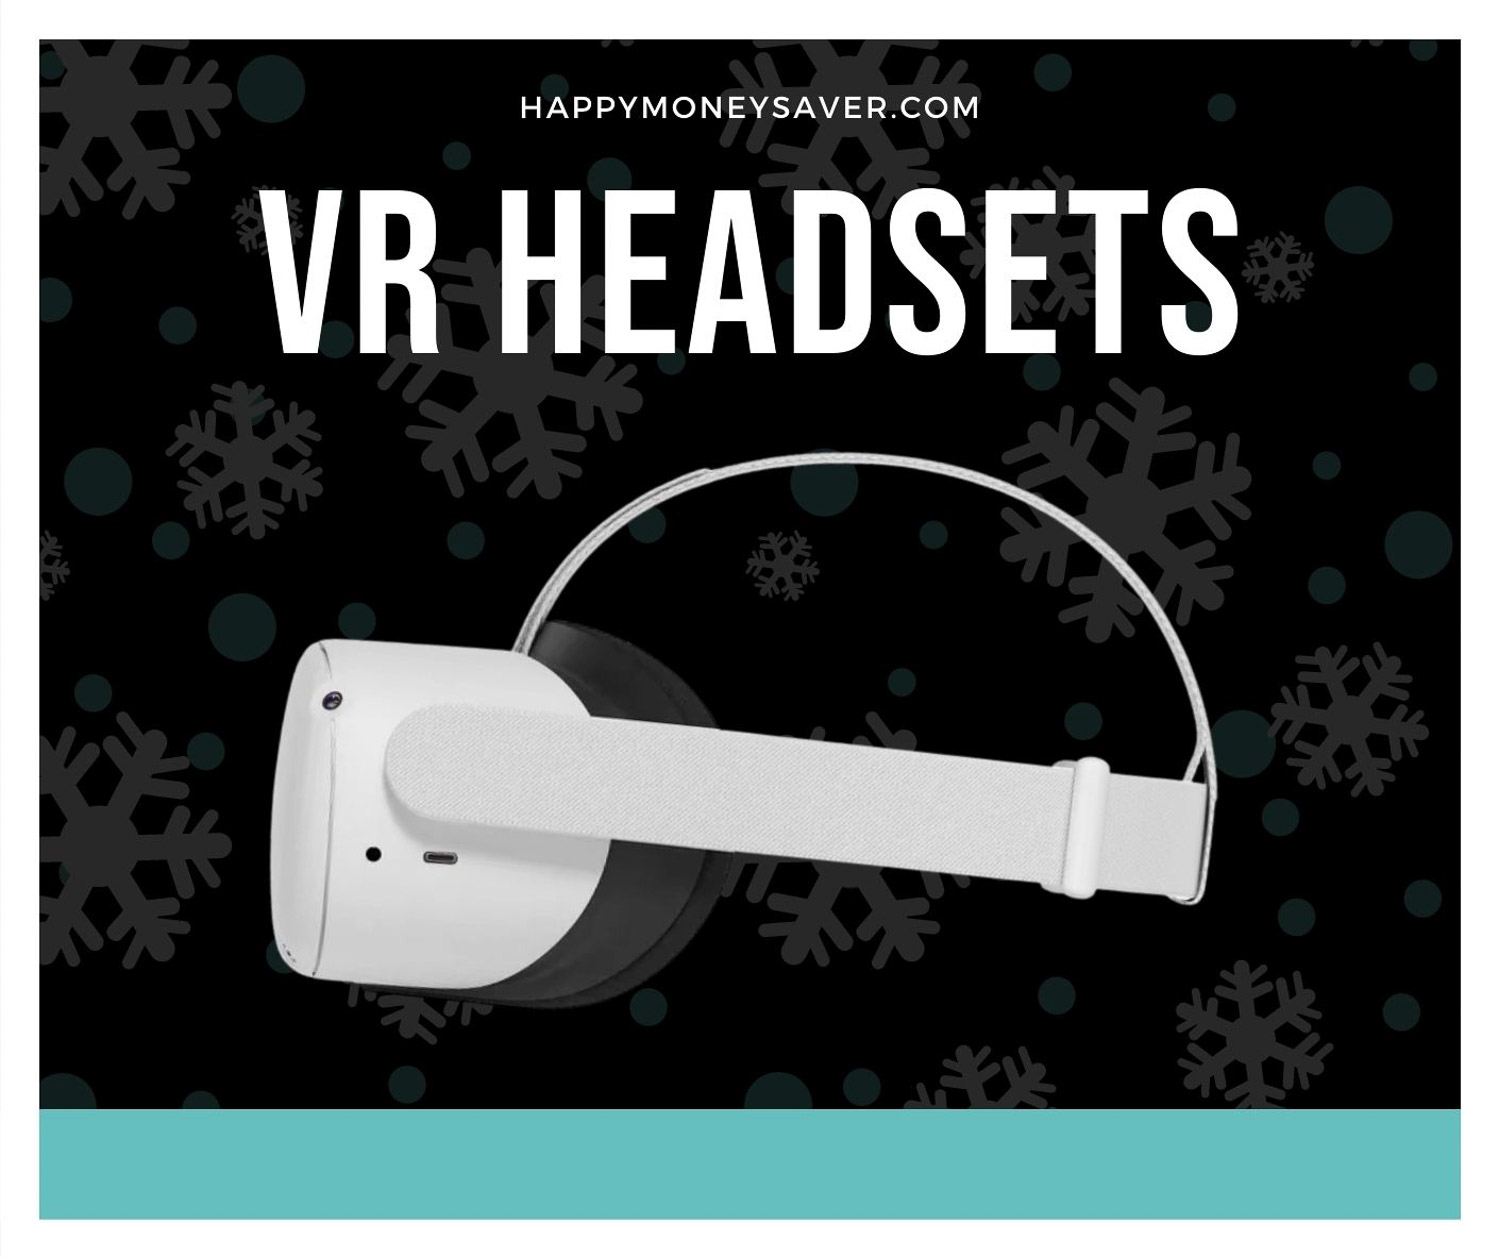 Virtual reality ocdulus headset for black friday deals post